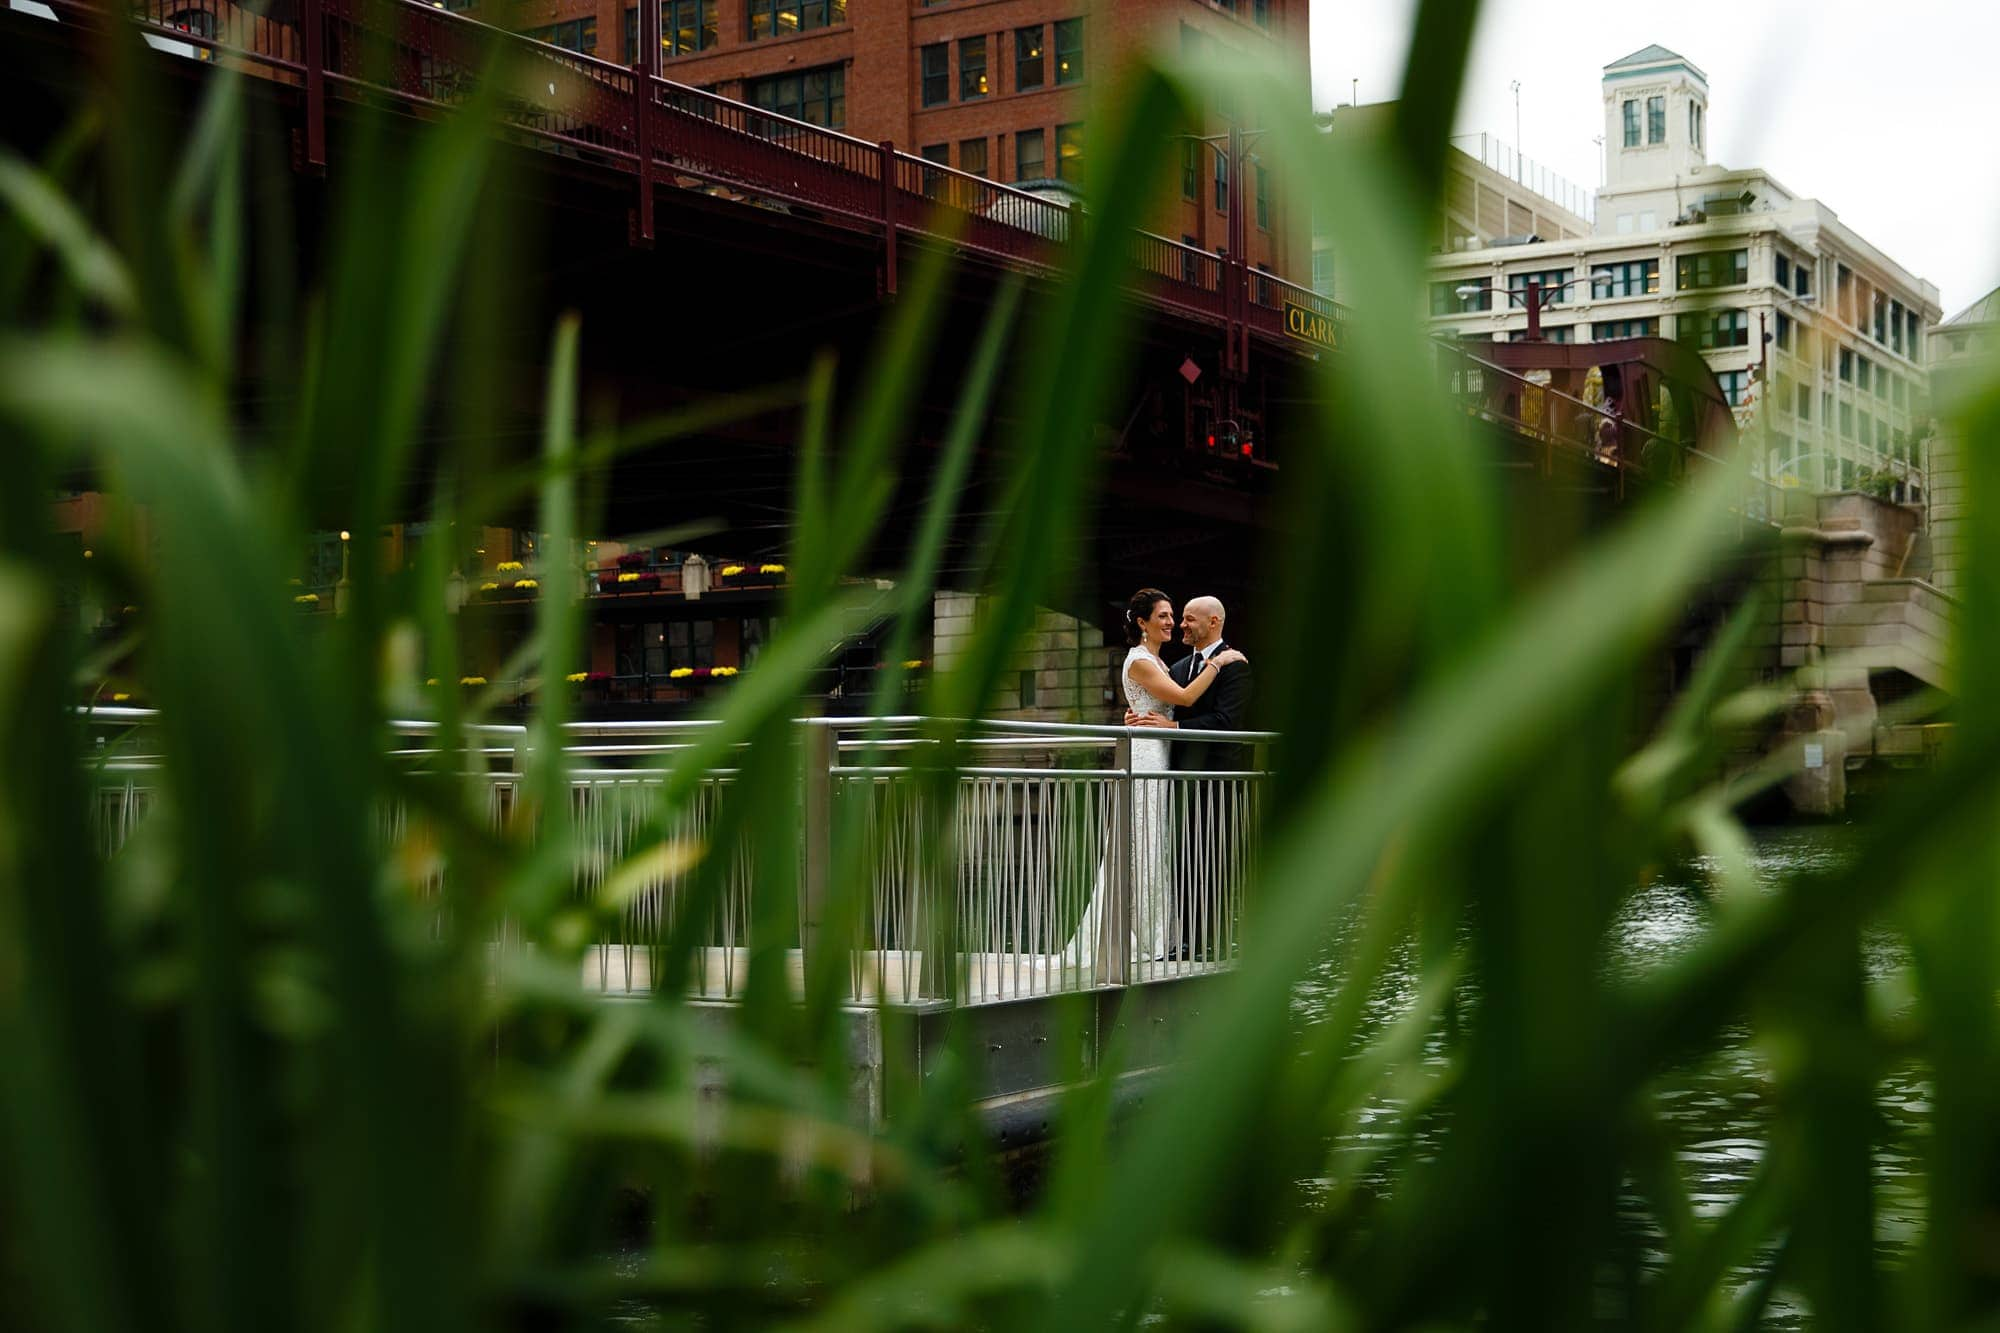 Christina and Brad share a moment together on their wedding day on the river walk under the Clark Street bridge